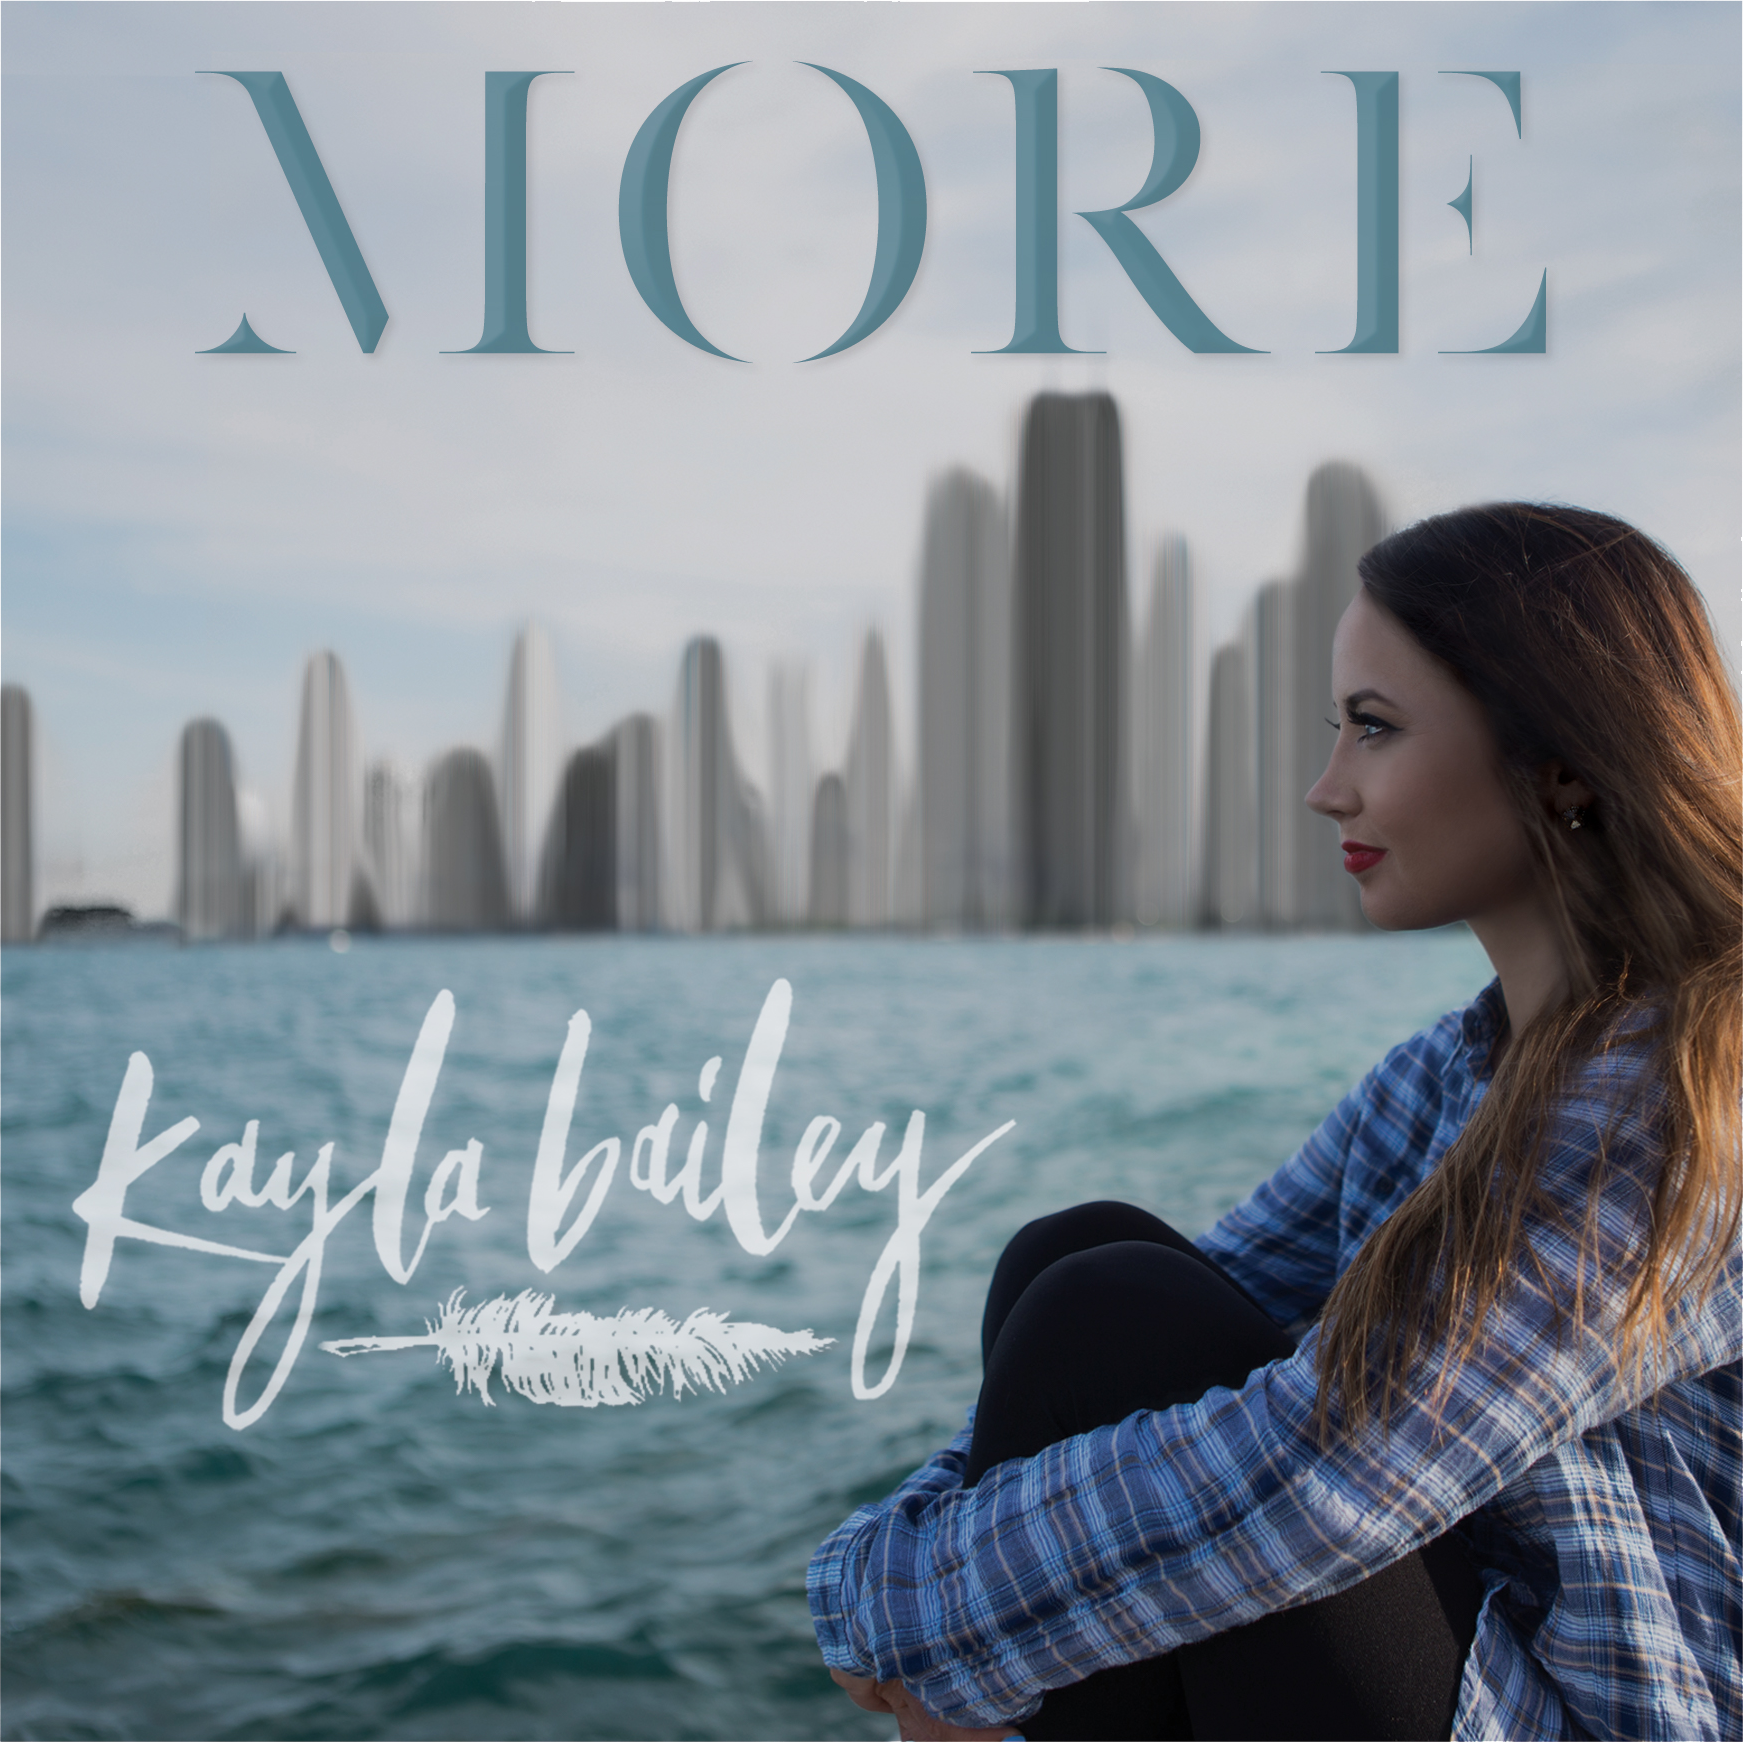 ACCLAIMED SINGER/SONGWRITER KAYLA BAILEY RELEASES NEW SINGLE